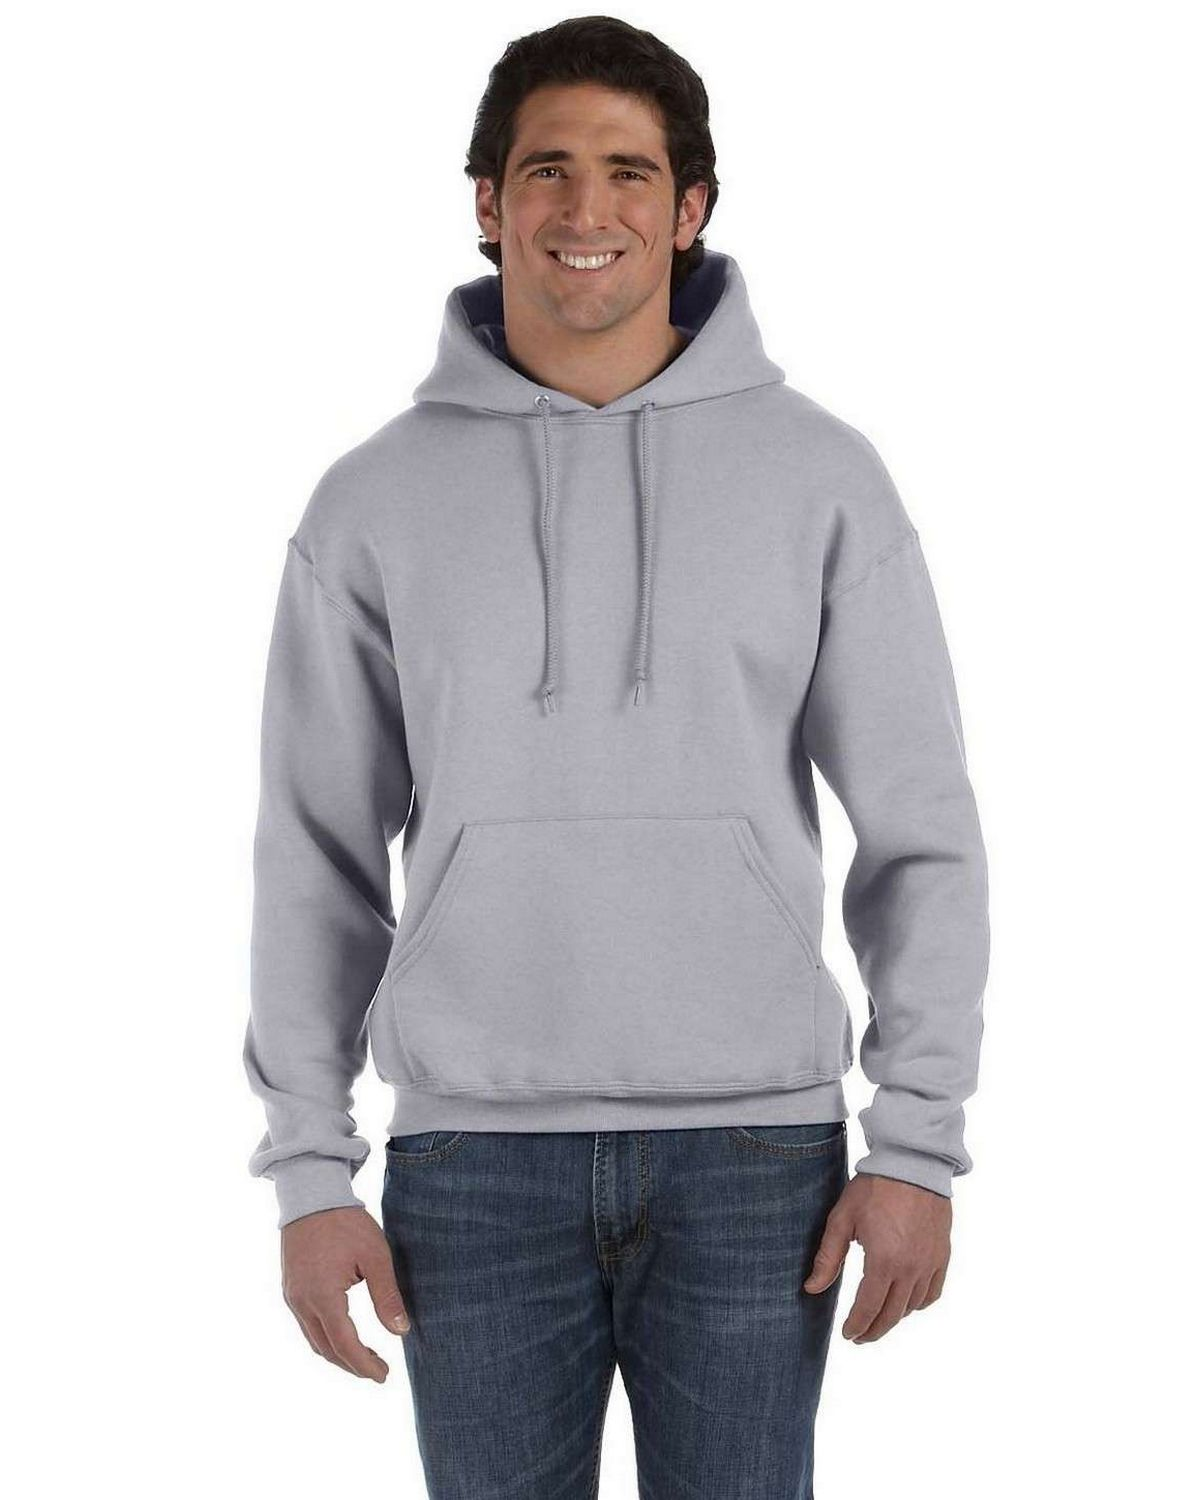 Fruit of the Loom 82130 Super Heavyweight 70/30 Hood - Athletic Heather - L 82130